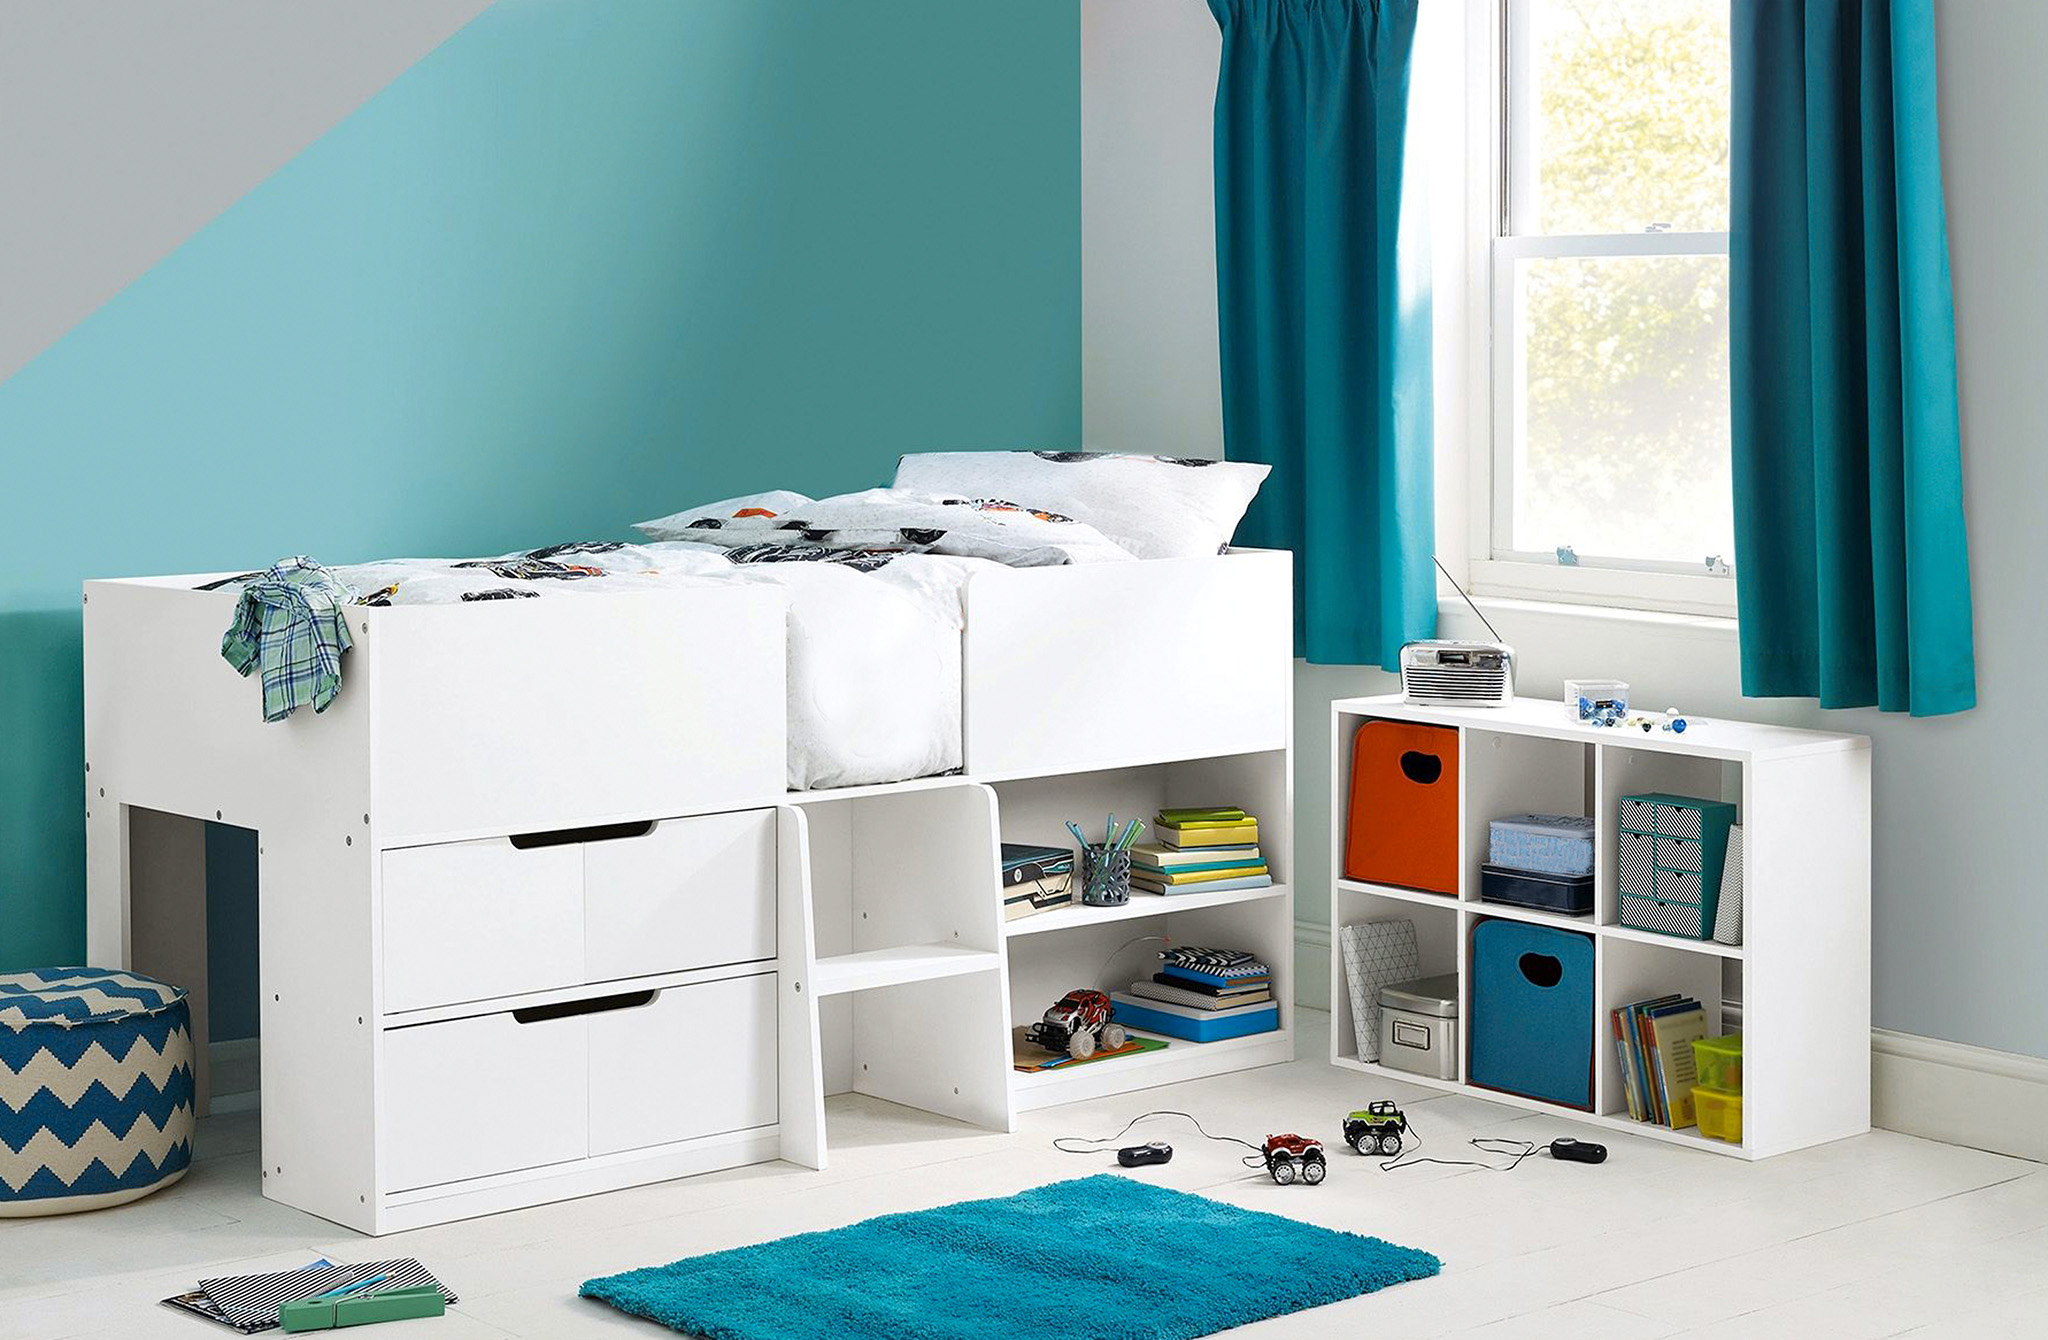 childrens storage, Childrens bedroom furniture